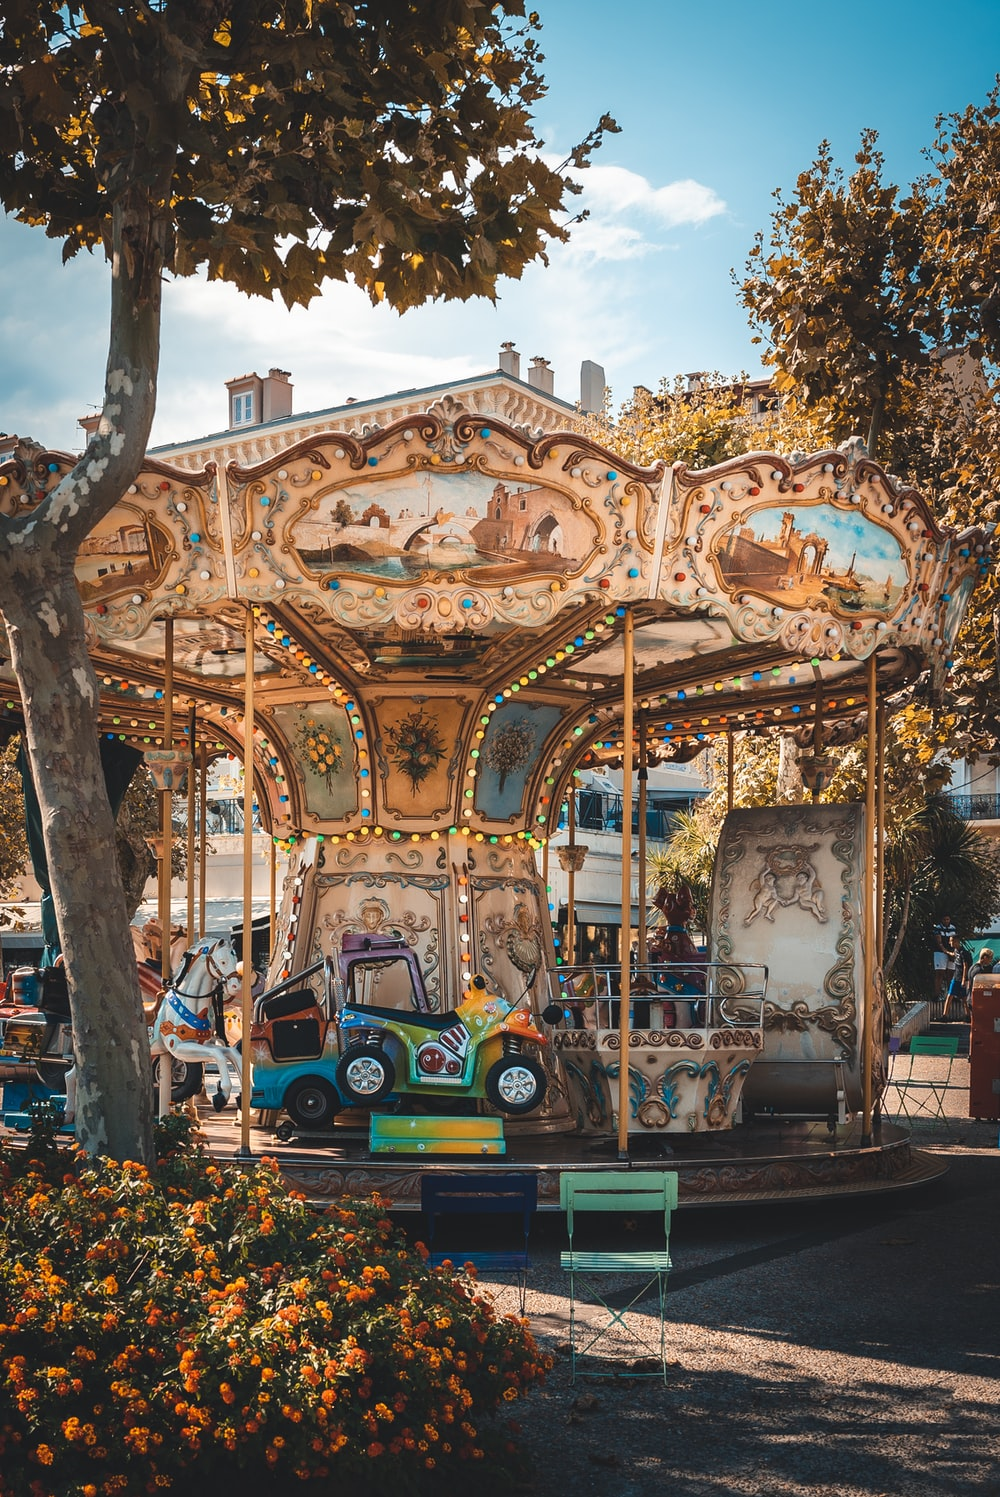 multicolored carousel near brown leaf trees at daytime